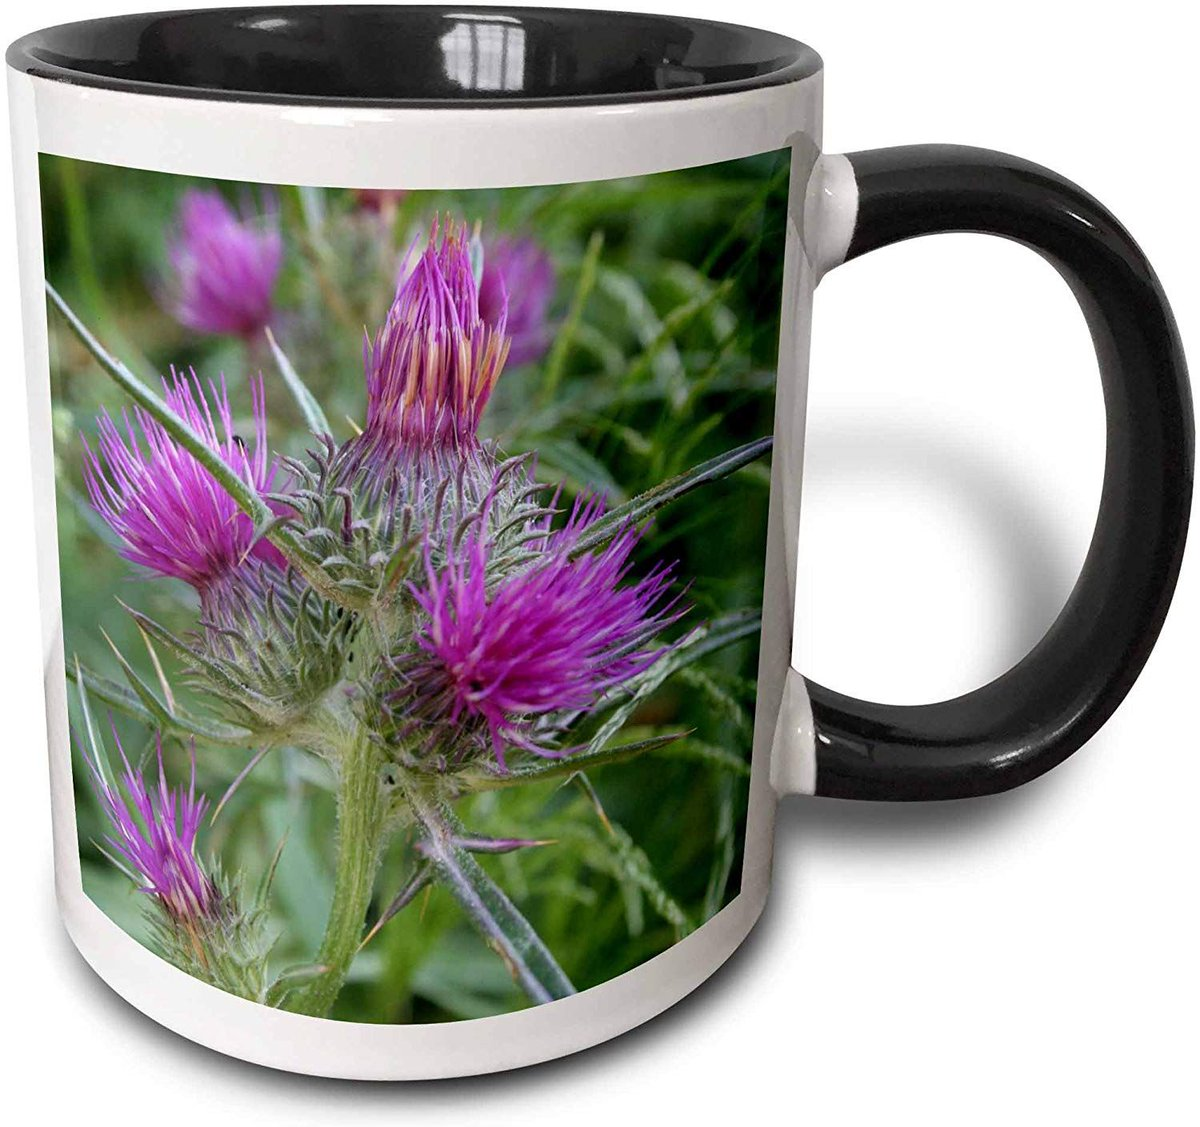 #SyrianThistle #Notobasissyriaca A #perfectgift and #mug for any occasion. For coffee if hotchocolate is not your cupoftea.  A #fun and #unique #giftidea. @3DRose #ATSocialMedia  .  via @amazon